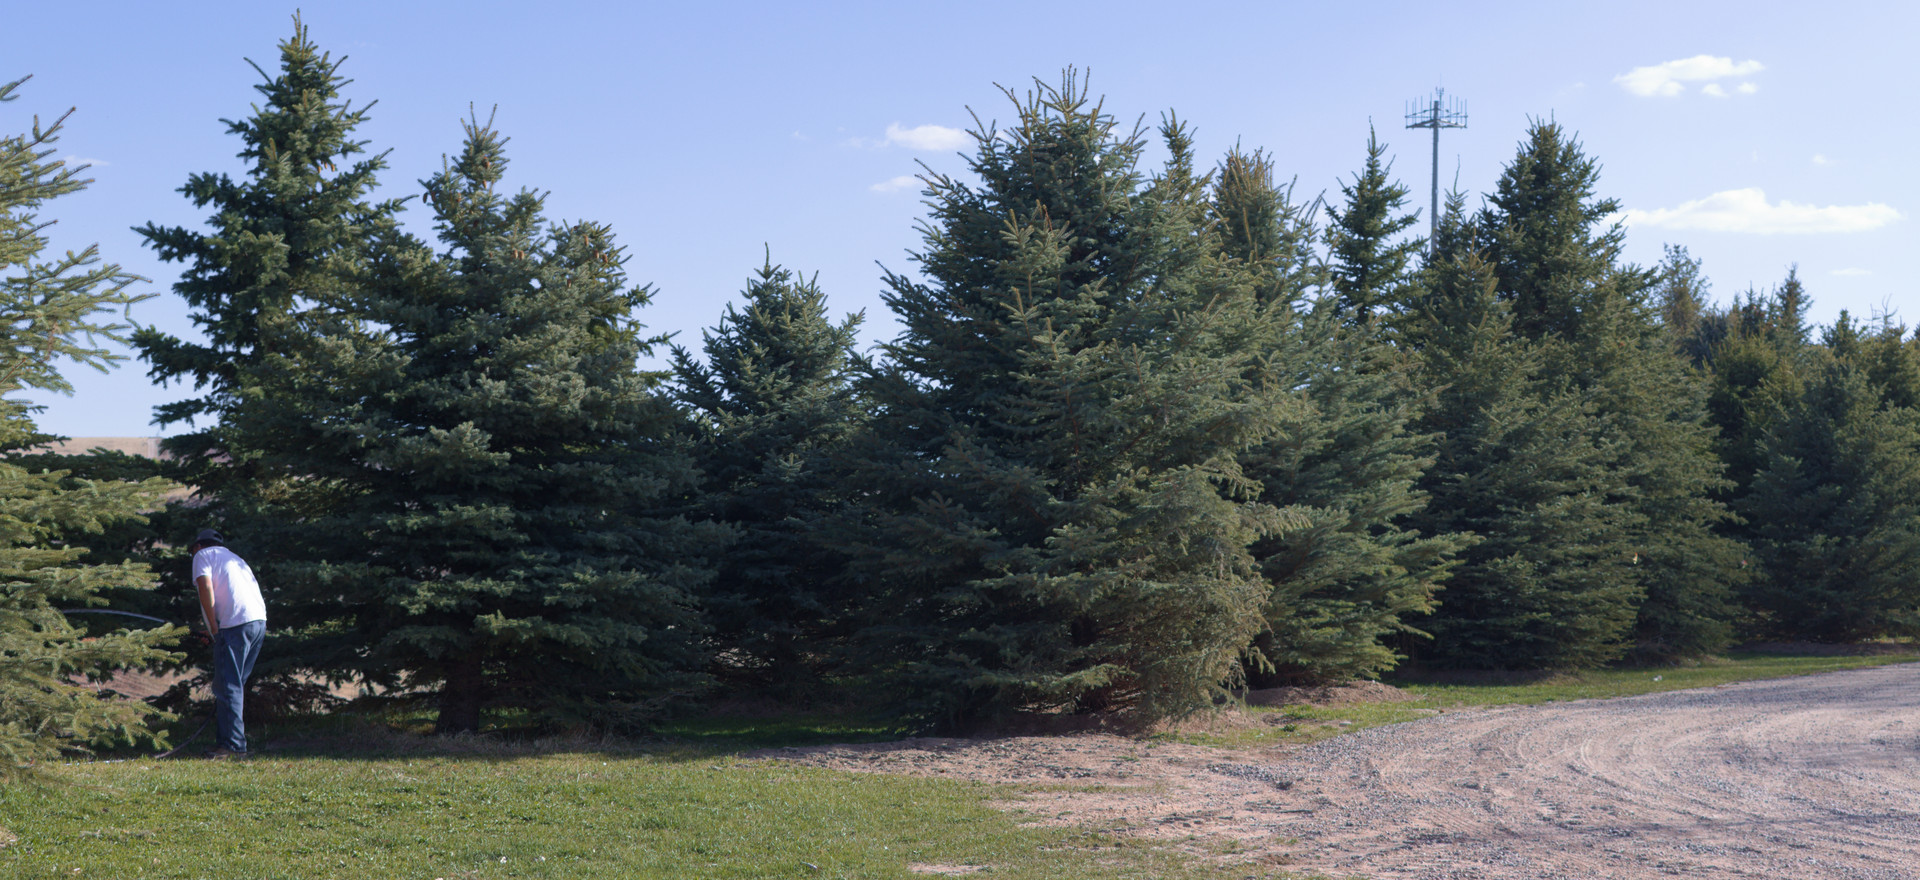 Large Spruce Trees